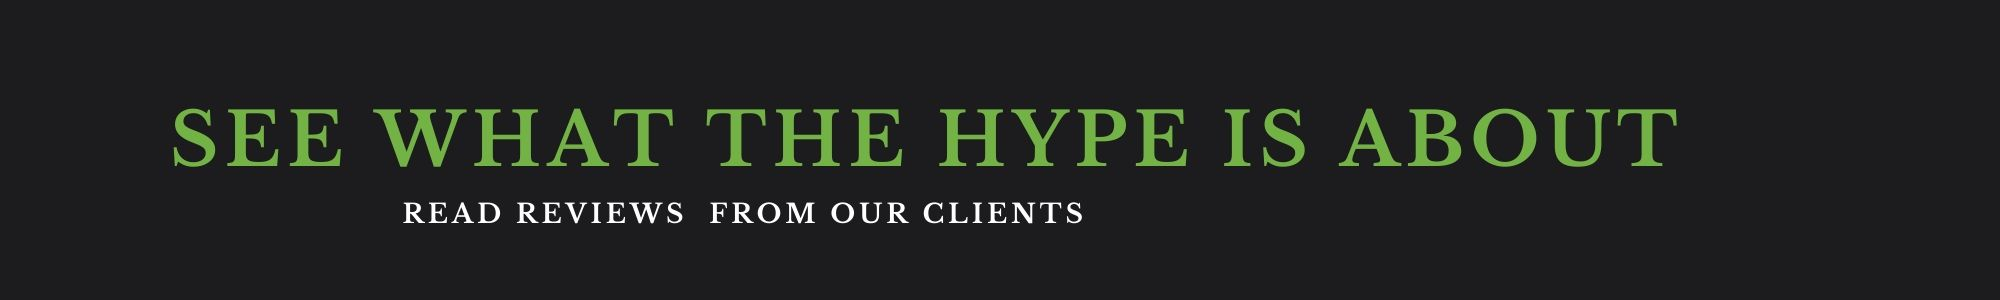 See what the hype is about. Read reviews from our clients.